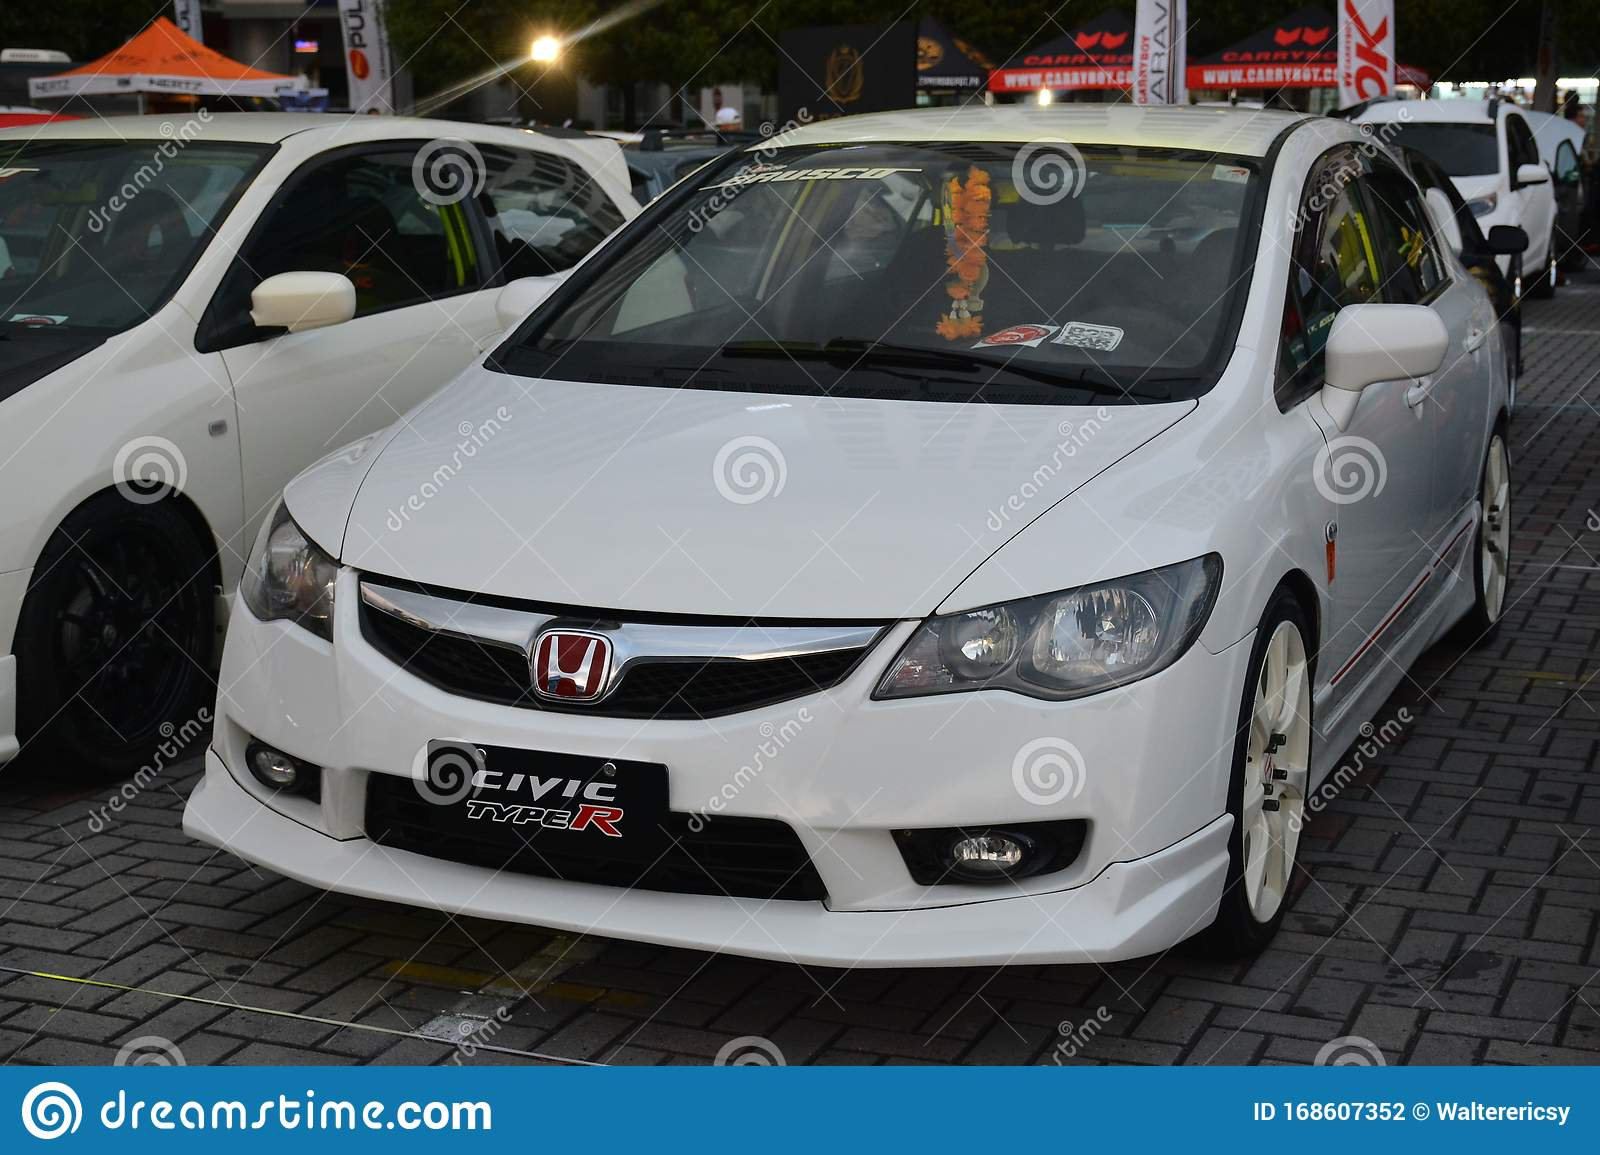 Honda Civic Type R At Bumper To Bumper 15 Car Show Editorial Photography Image Of Custom Modified 168607352